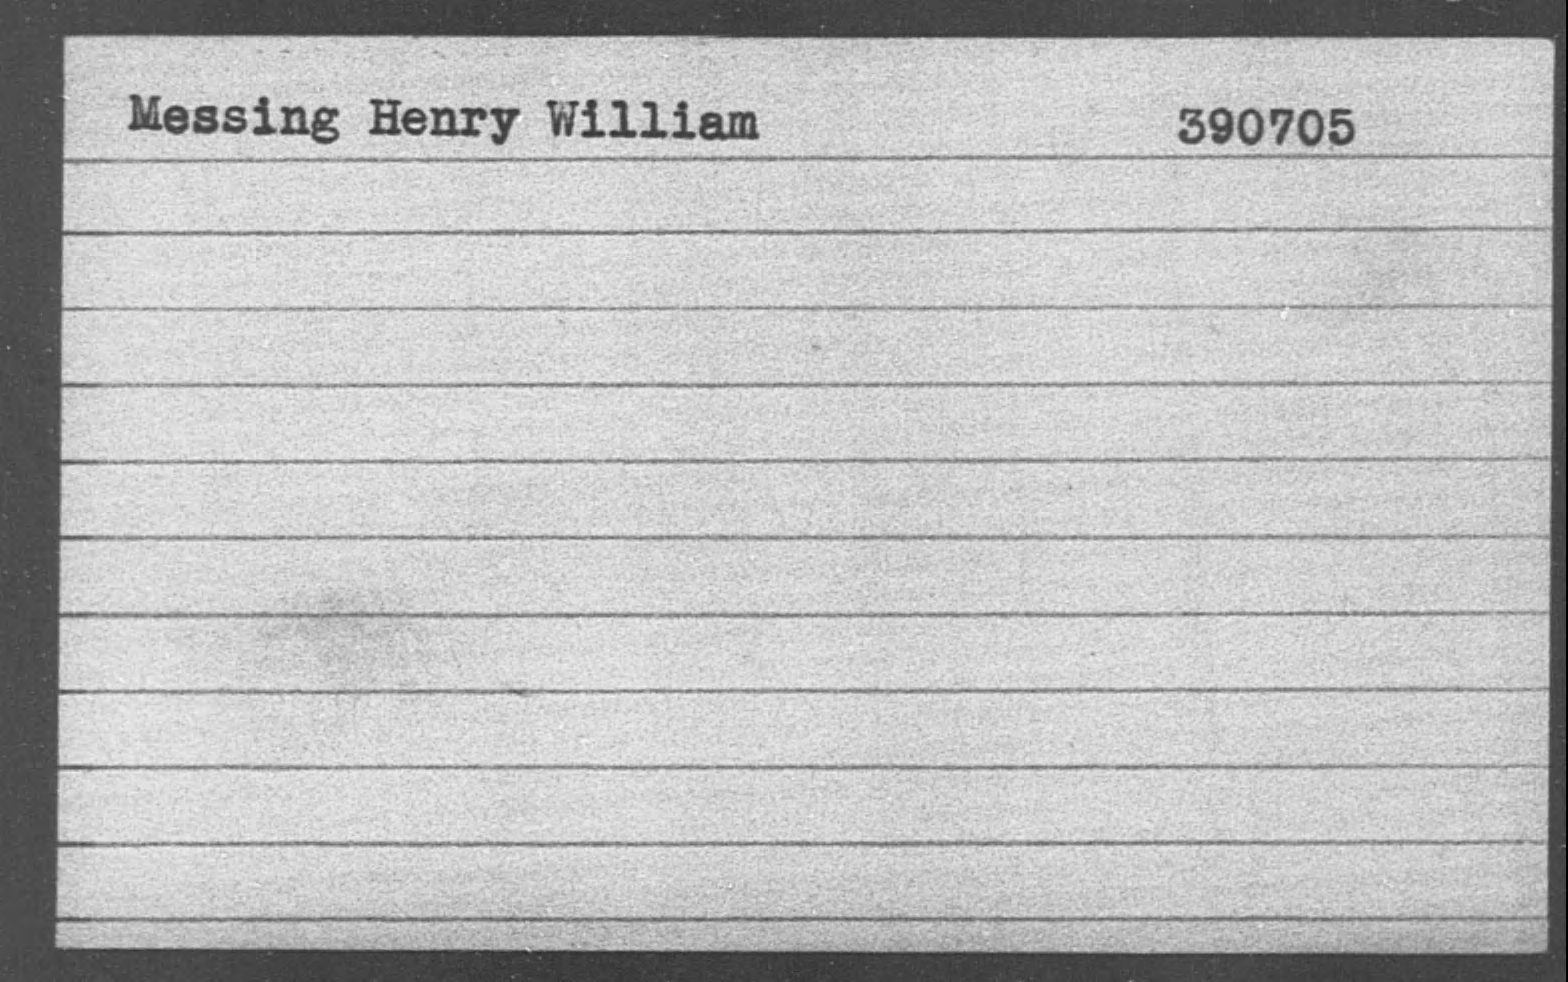 Messing Henry William